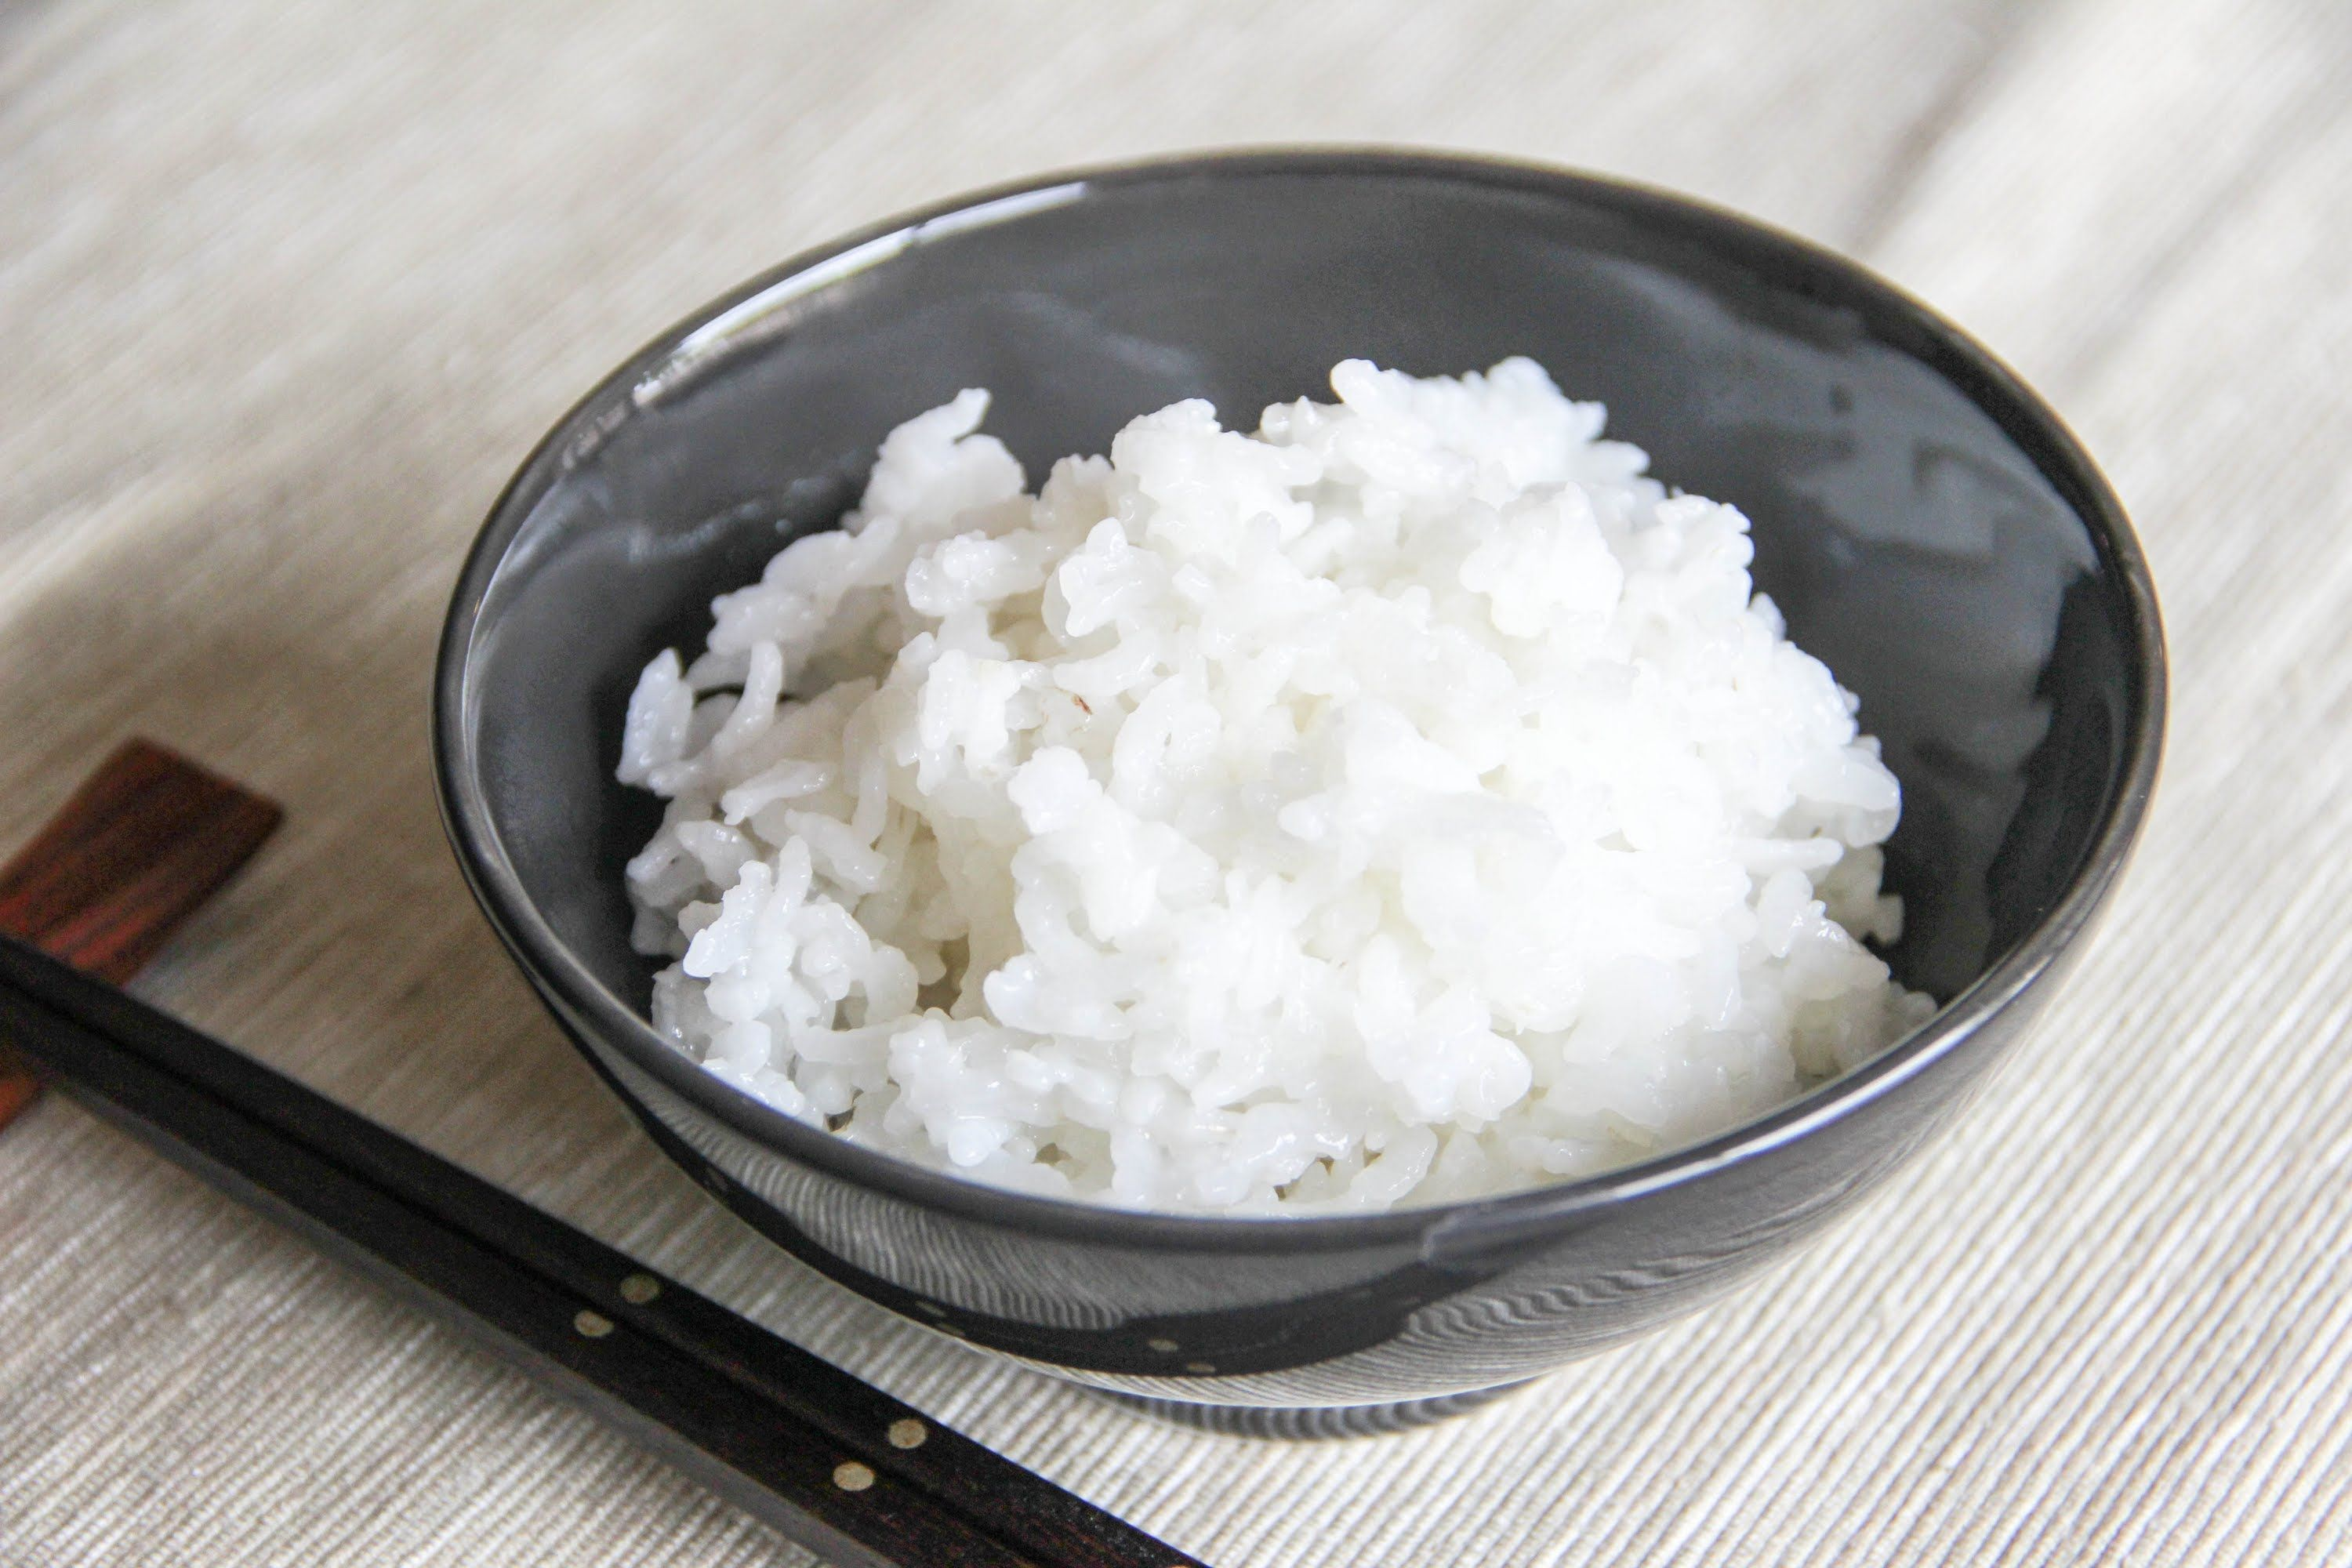 Steamed Rice Recipe Japanese Cooking 101 Steam rice